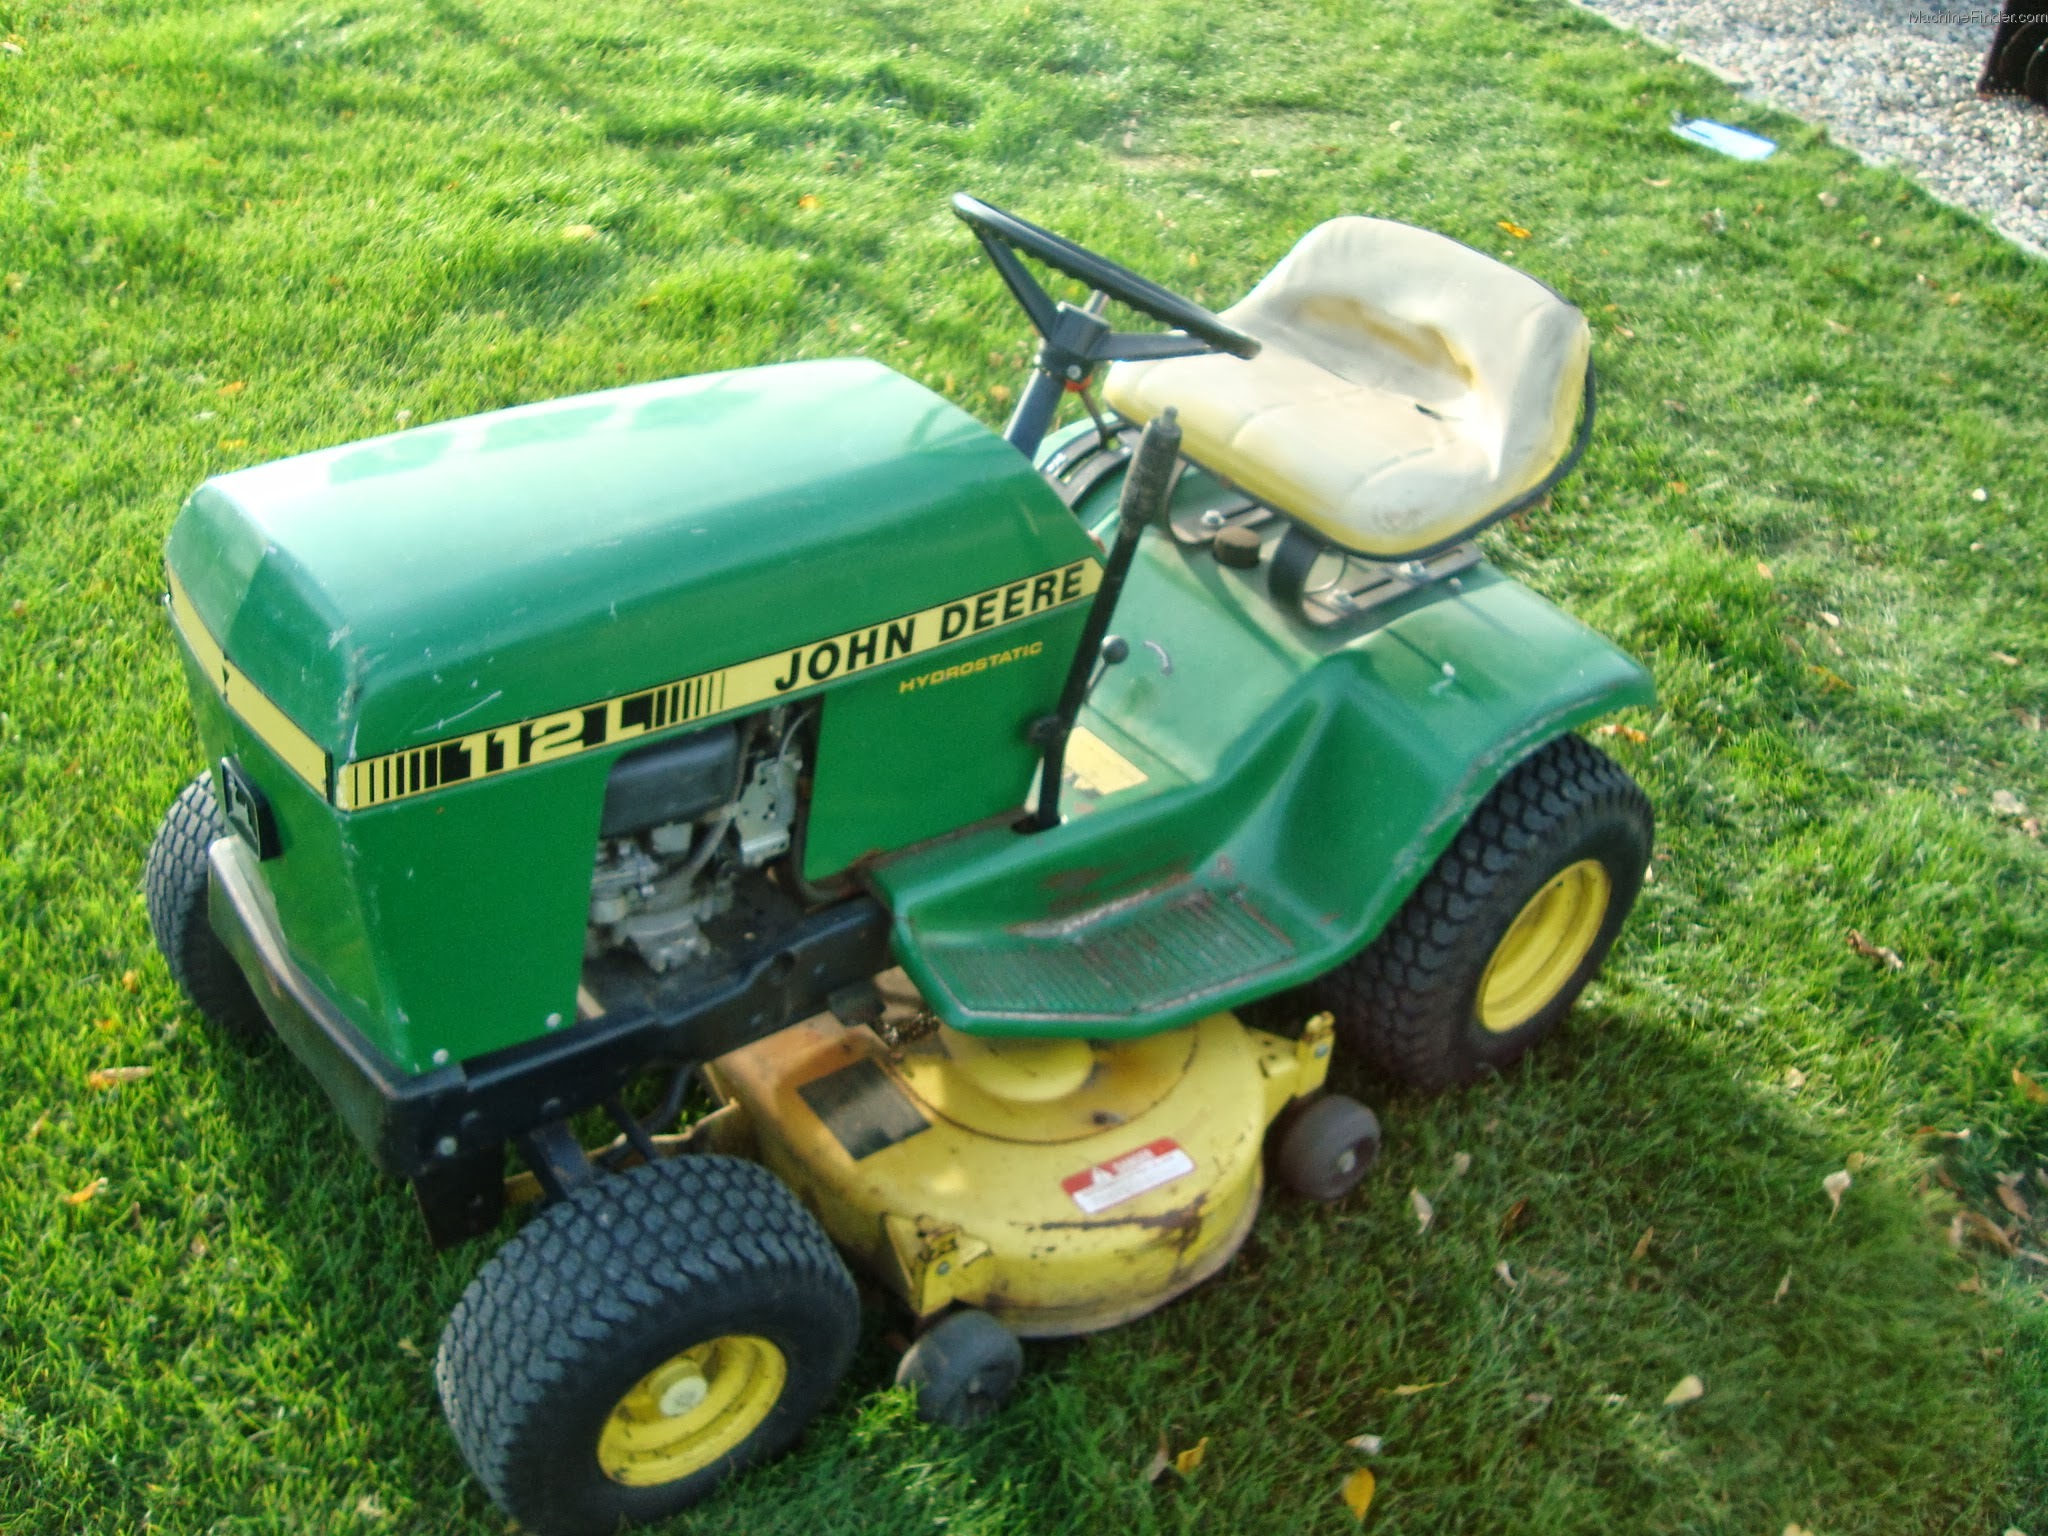 garden parts friendliest hydrostatic for scotts tractor and deere best the information john mytractorforum forum issue com place